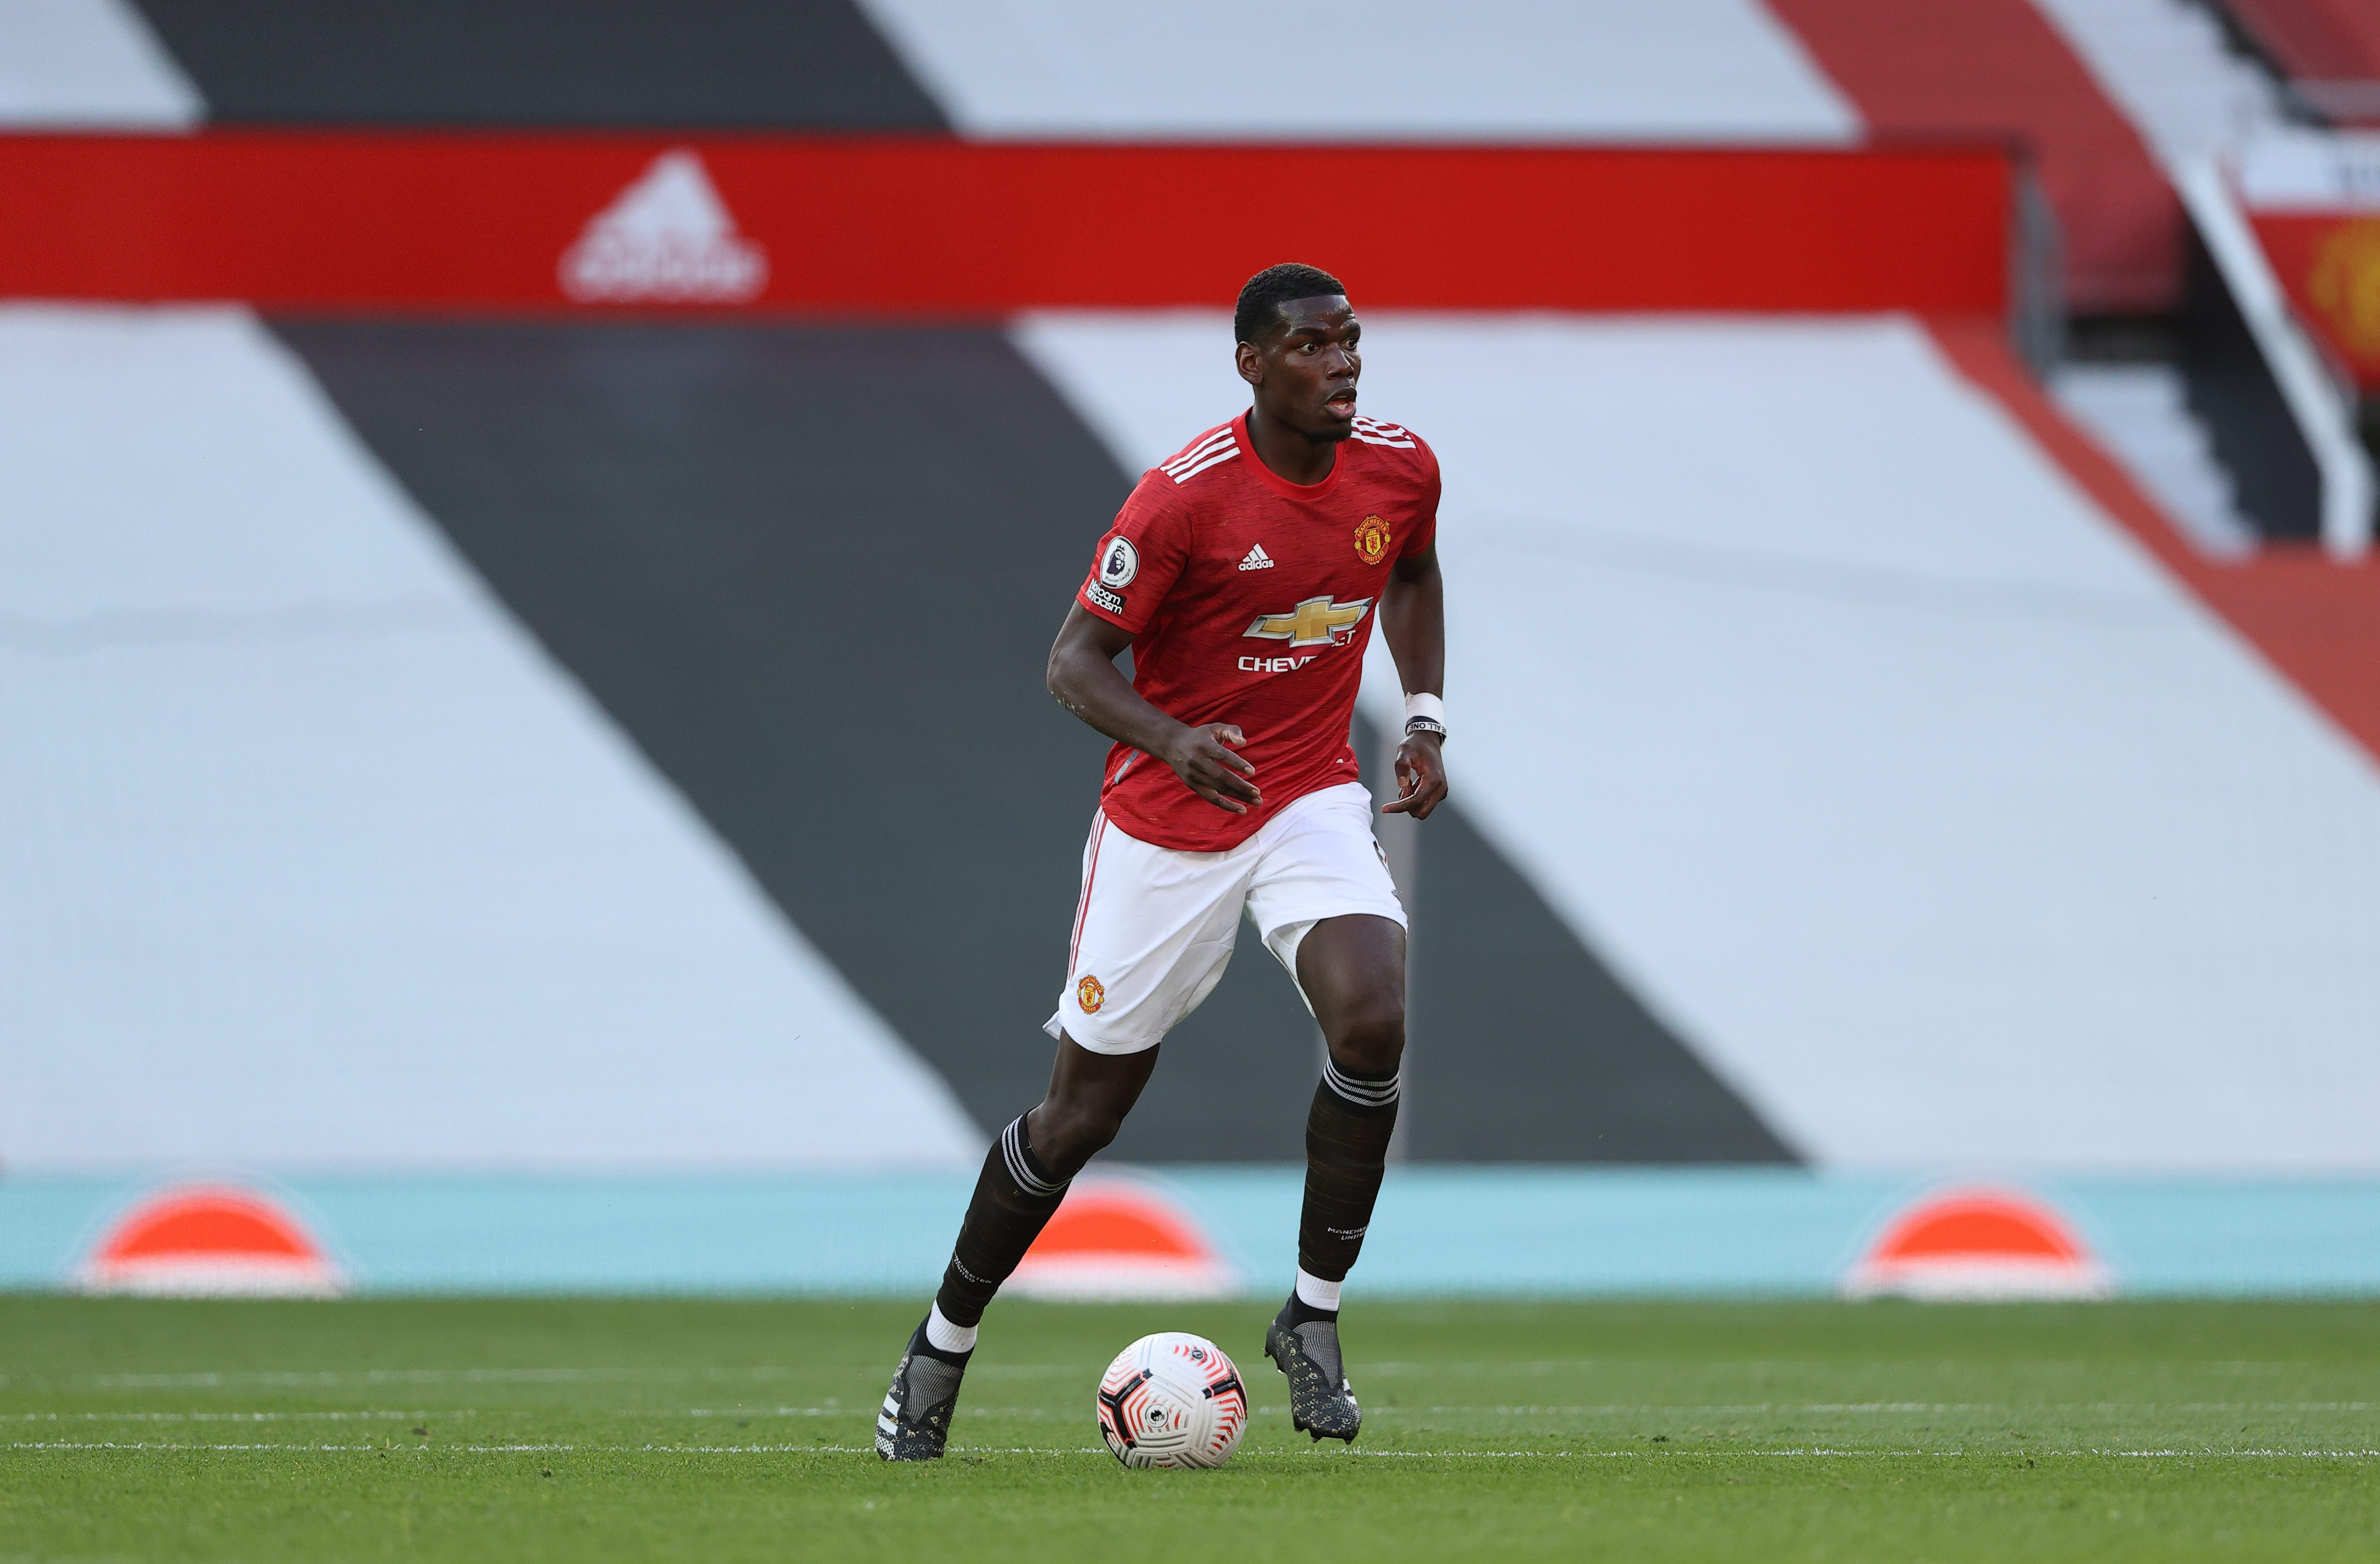 Paul Pogba wouldn't get into Liverpool's midfield, believes Danny Murphy, as Bruno Fernandes partnership at Ma thumbnail